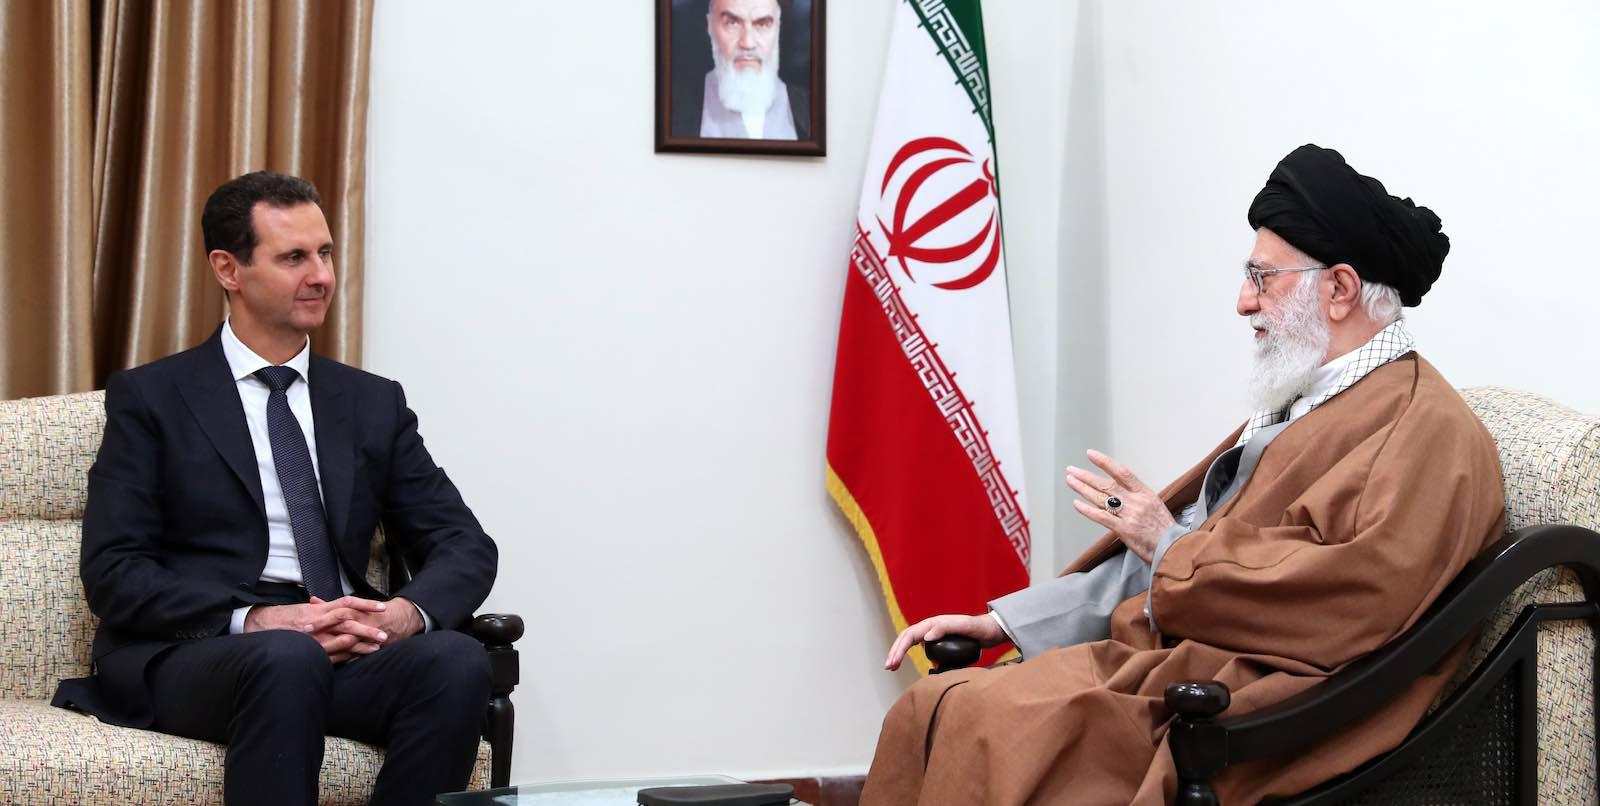 ifmat - Iran builds new prison in Syria ignoring blackouts and water crisis at home